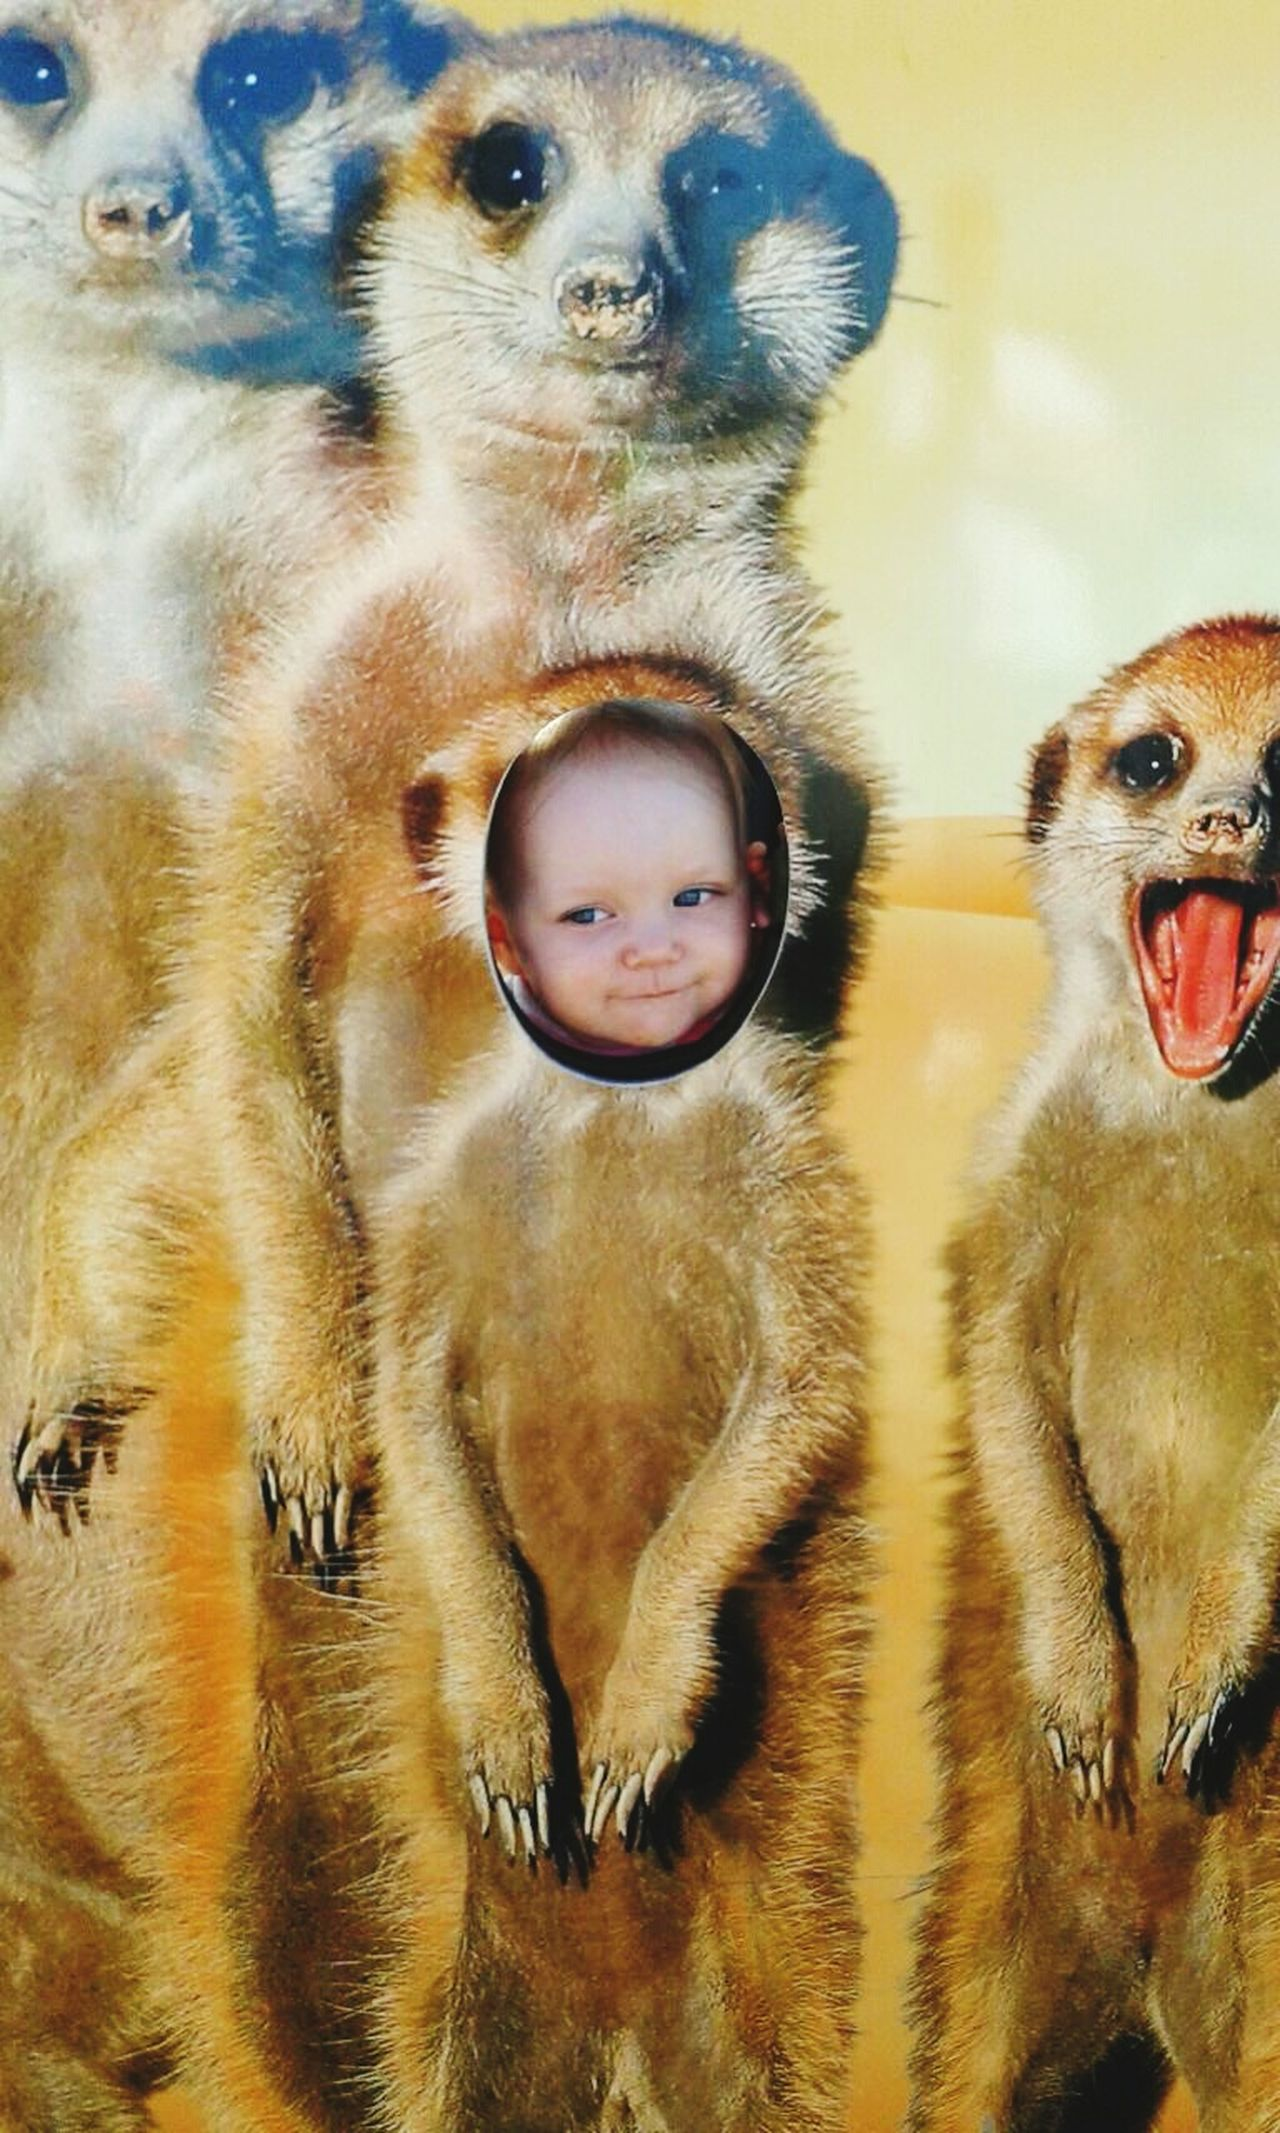 Chillin with her buddies Close-up Animal Themes Portrait Mammal Outdoors Nature Day Farm Folly Meerkat Little Little Girl Sweet Cute♡ Babygirl Playing One Girl Only Cheerful One Person Headshot Children Only Baby Front View Smiling Childhood